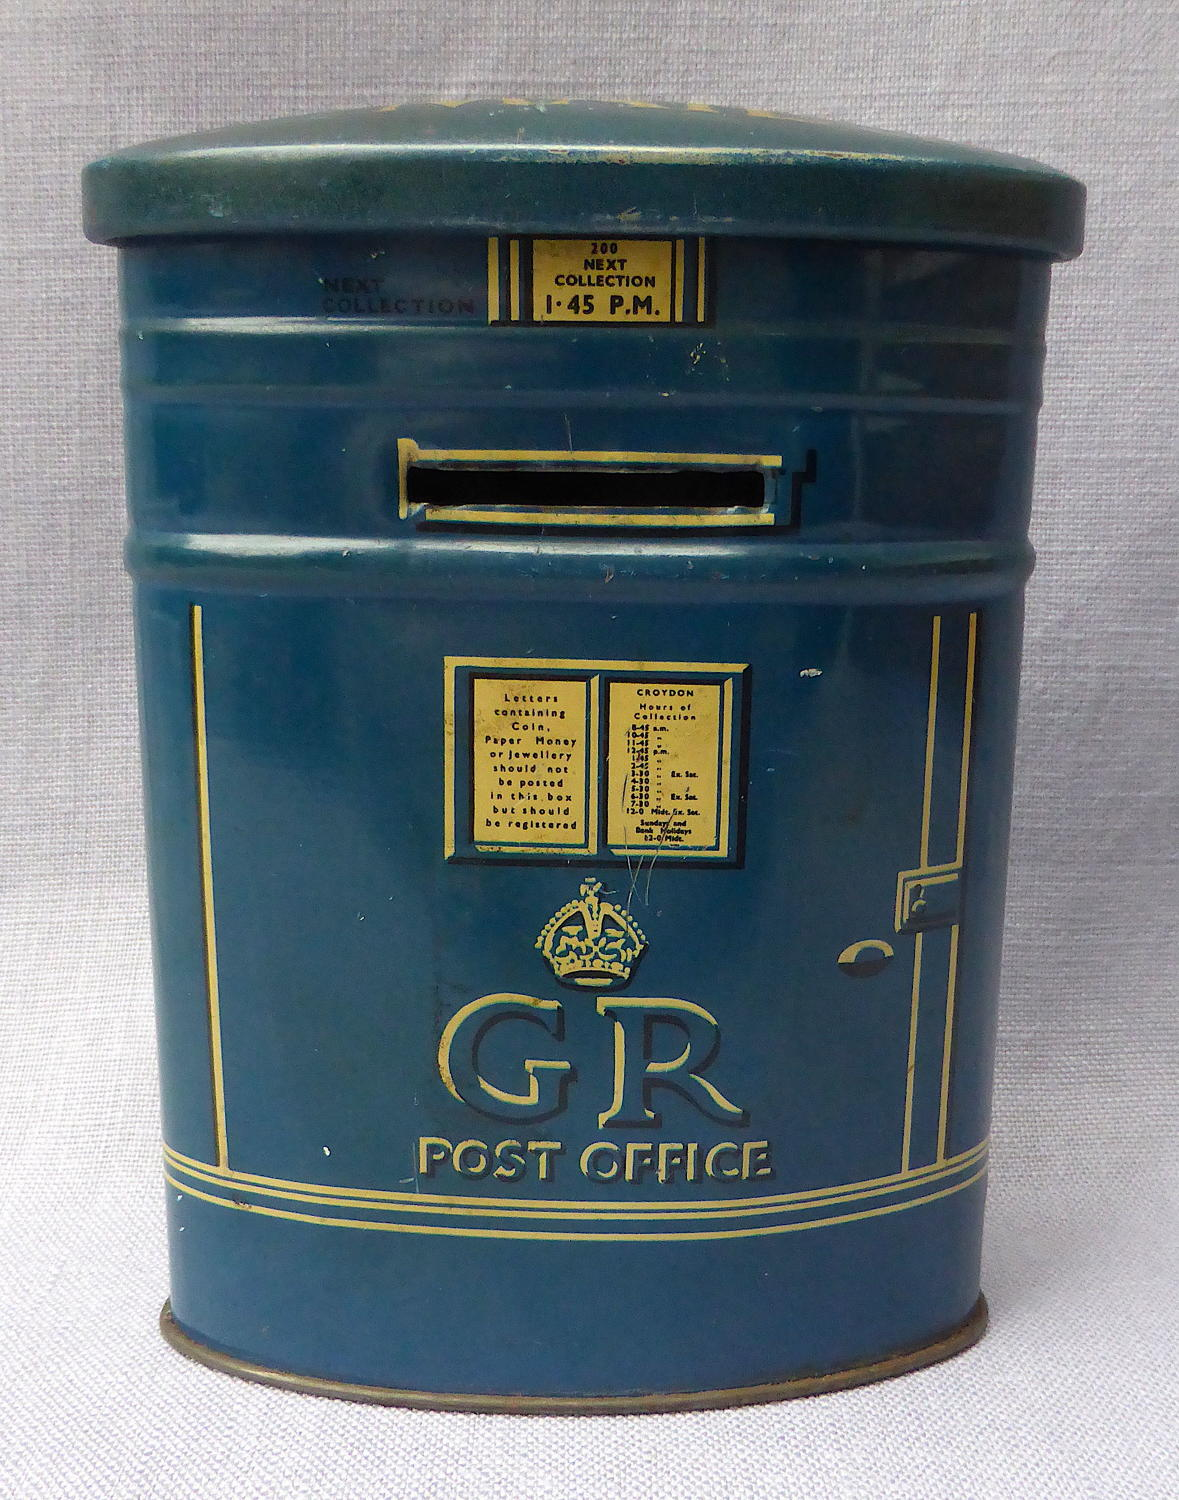 Rare 1930s blue airmail postbox money box